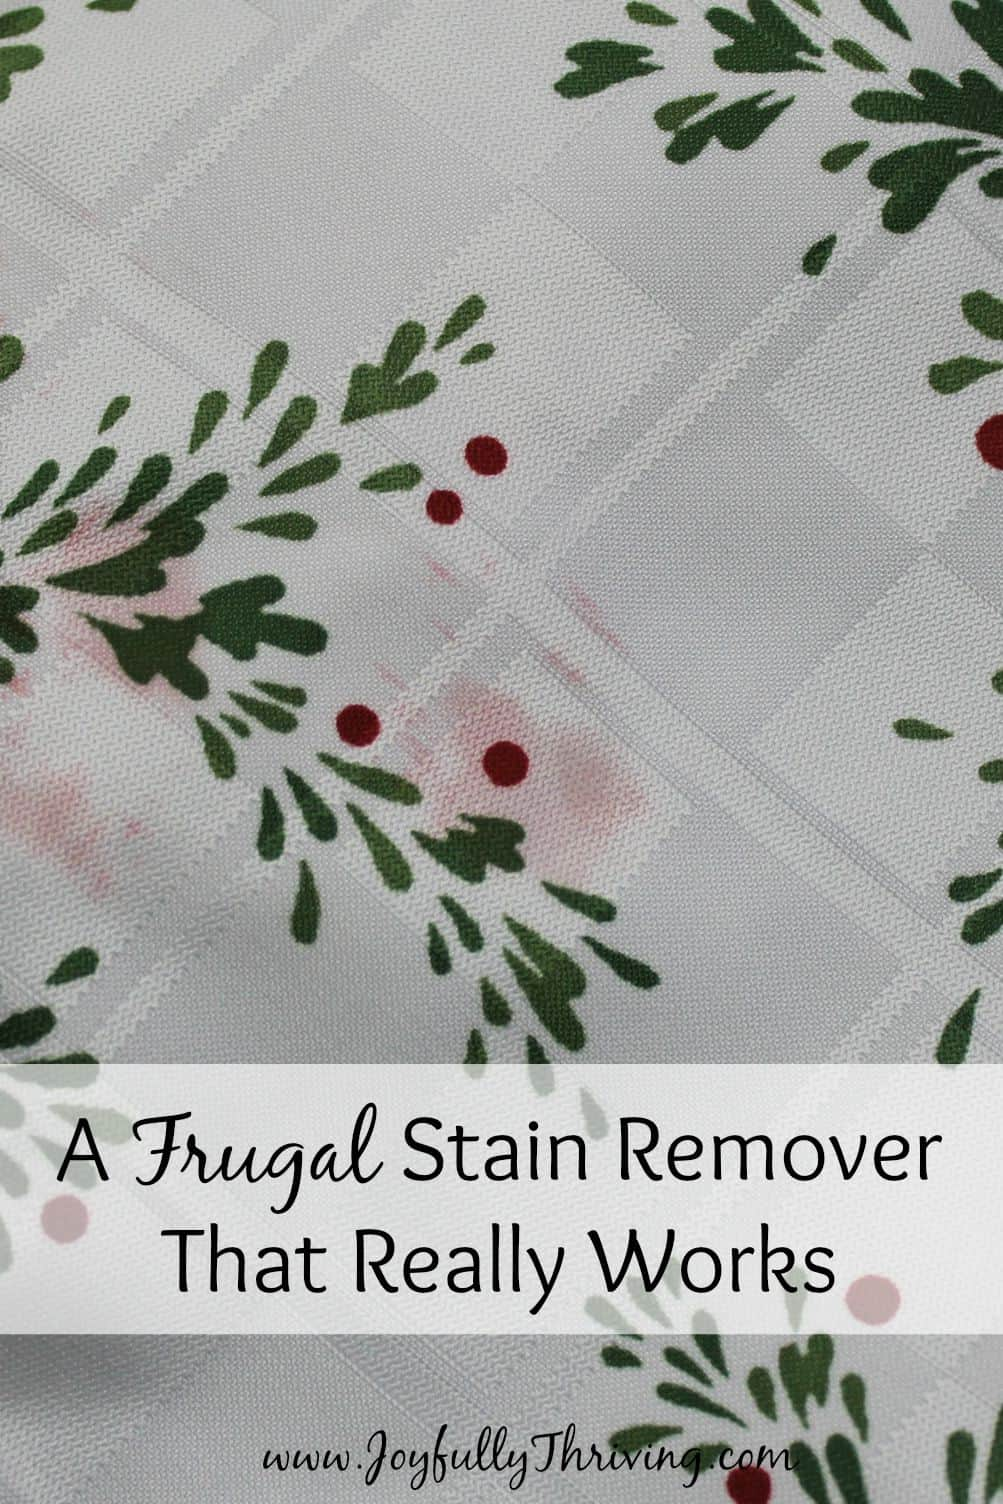 A Frugal Stain Remover That Really Works